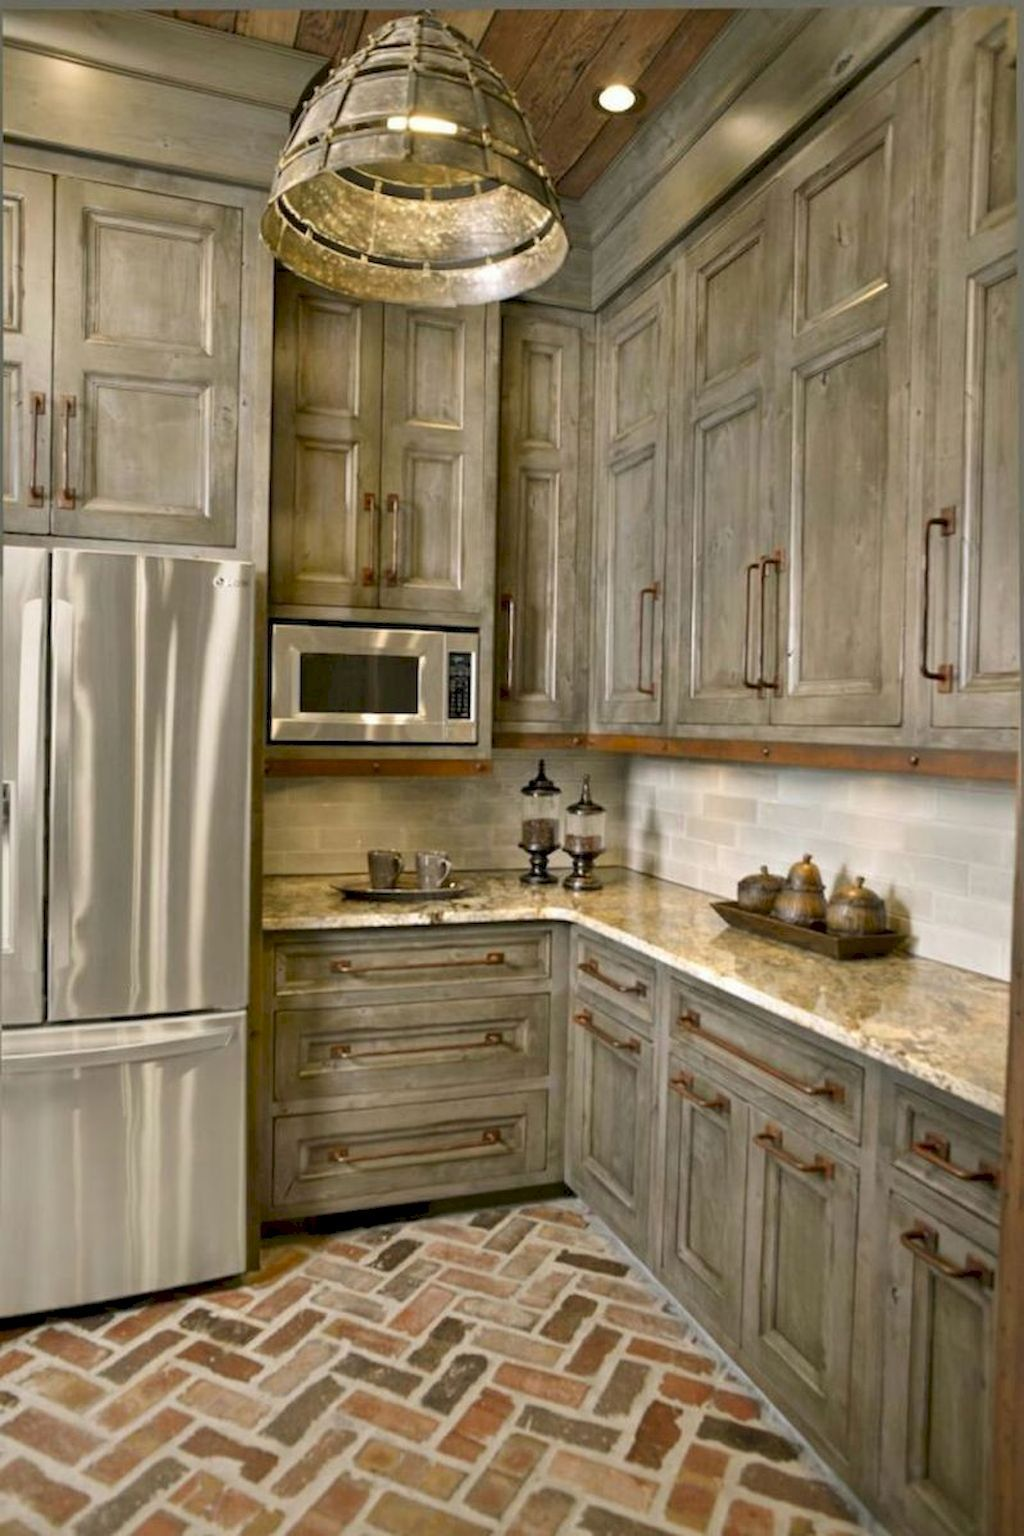 Kitchen Cabinet Ideas Pictures Gallery Two Tone Other Color For Painting Cabinet Diy W Brick Floor Kitchen Rustic Kitchen Cabinets Rustic Farmhouse Kitchen